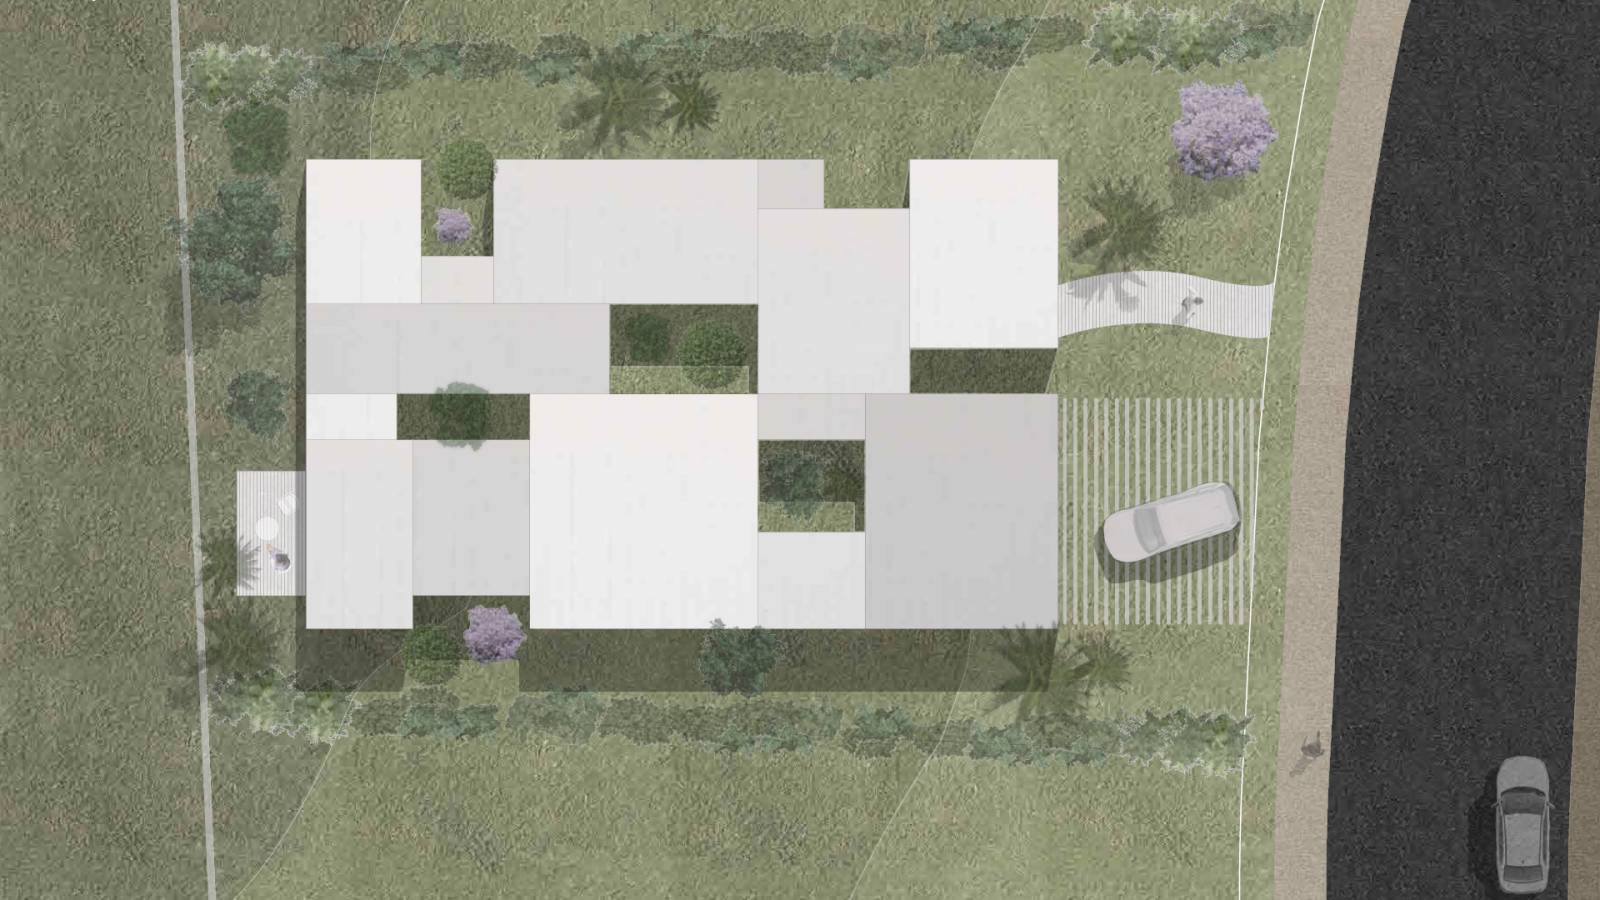 HOUSE #2 - ROOF PLAN - 6 case study houses - SPOL Architects